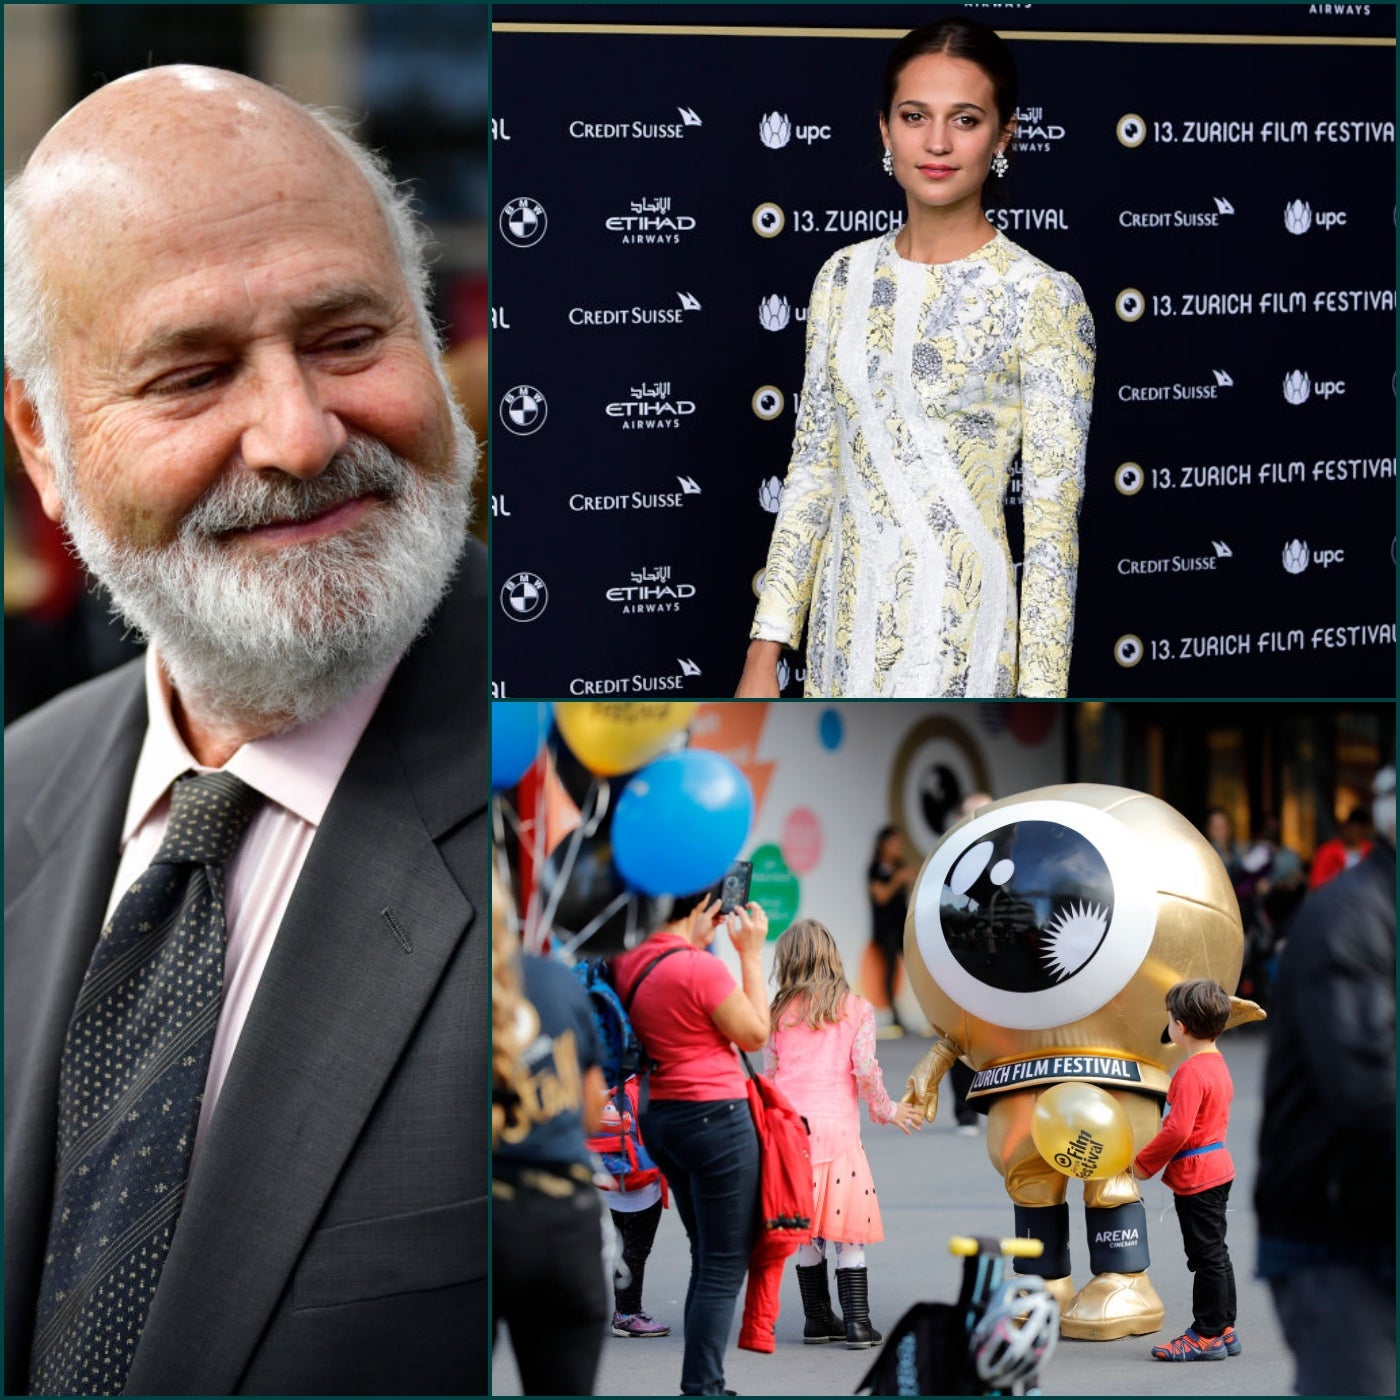 Scenes from the 2017 Zurich Film Festival: Rob Reiner, Alicia Vikander